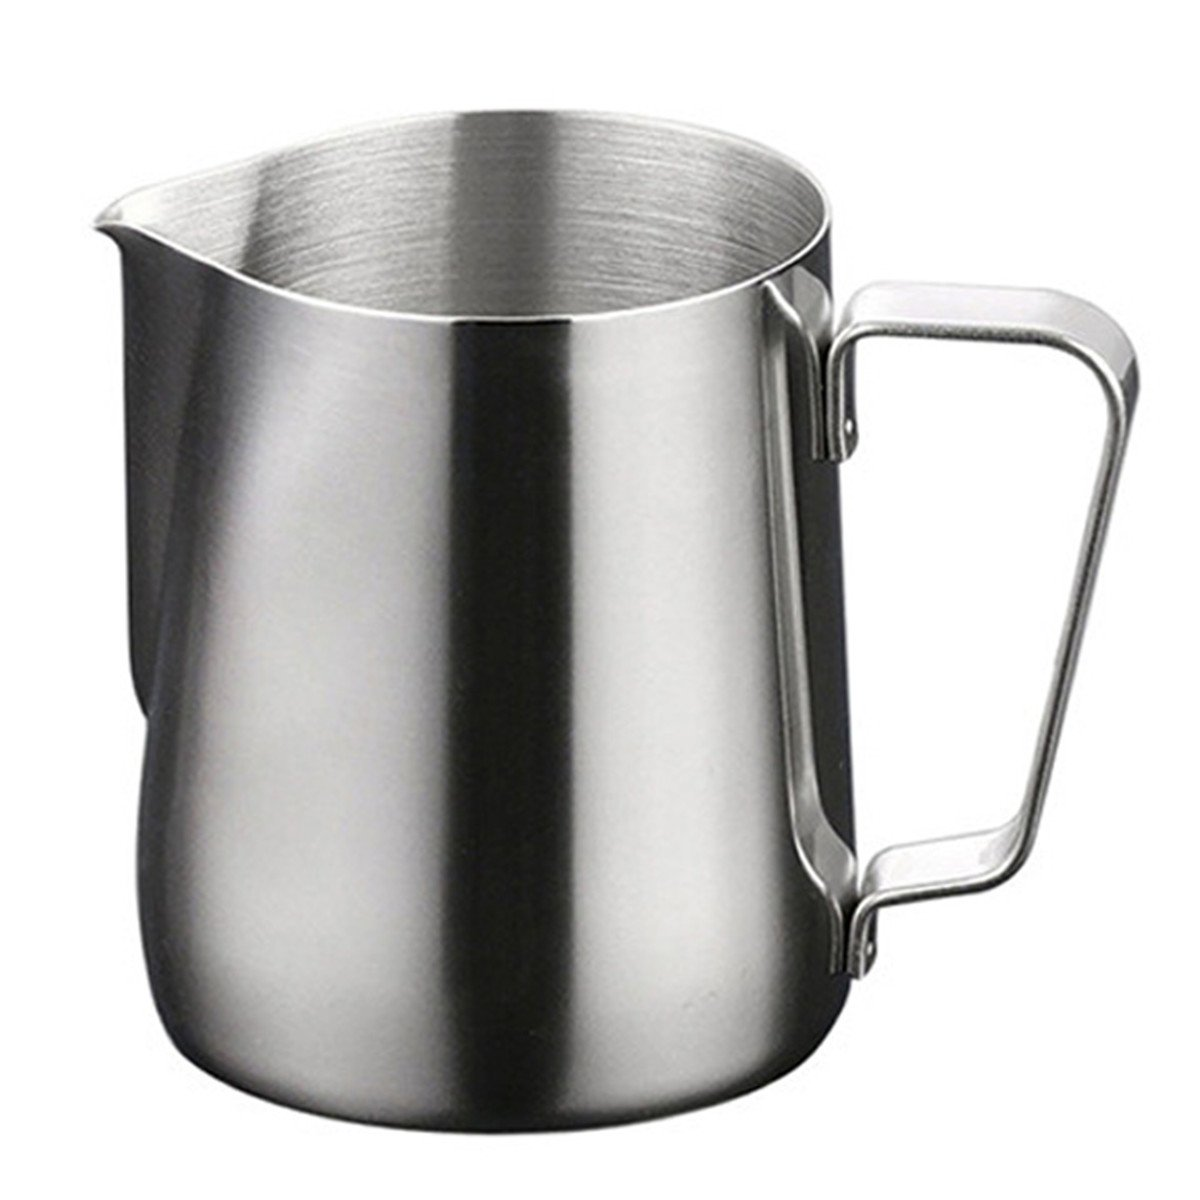 34 OZ Kitchen Stainless Steel Milk Frothing Pitcher Jug Espresso Latte Coffee Creamer Frothing Steaming Pitcher Cup,1000ml by LKXHarleya